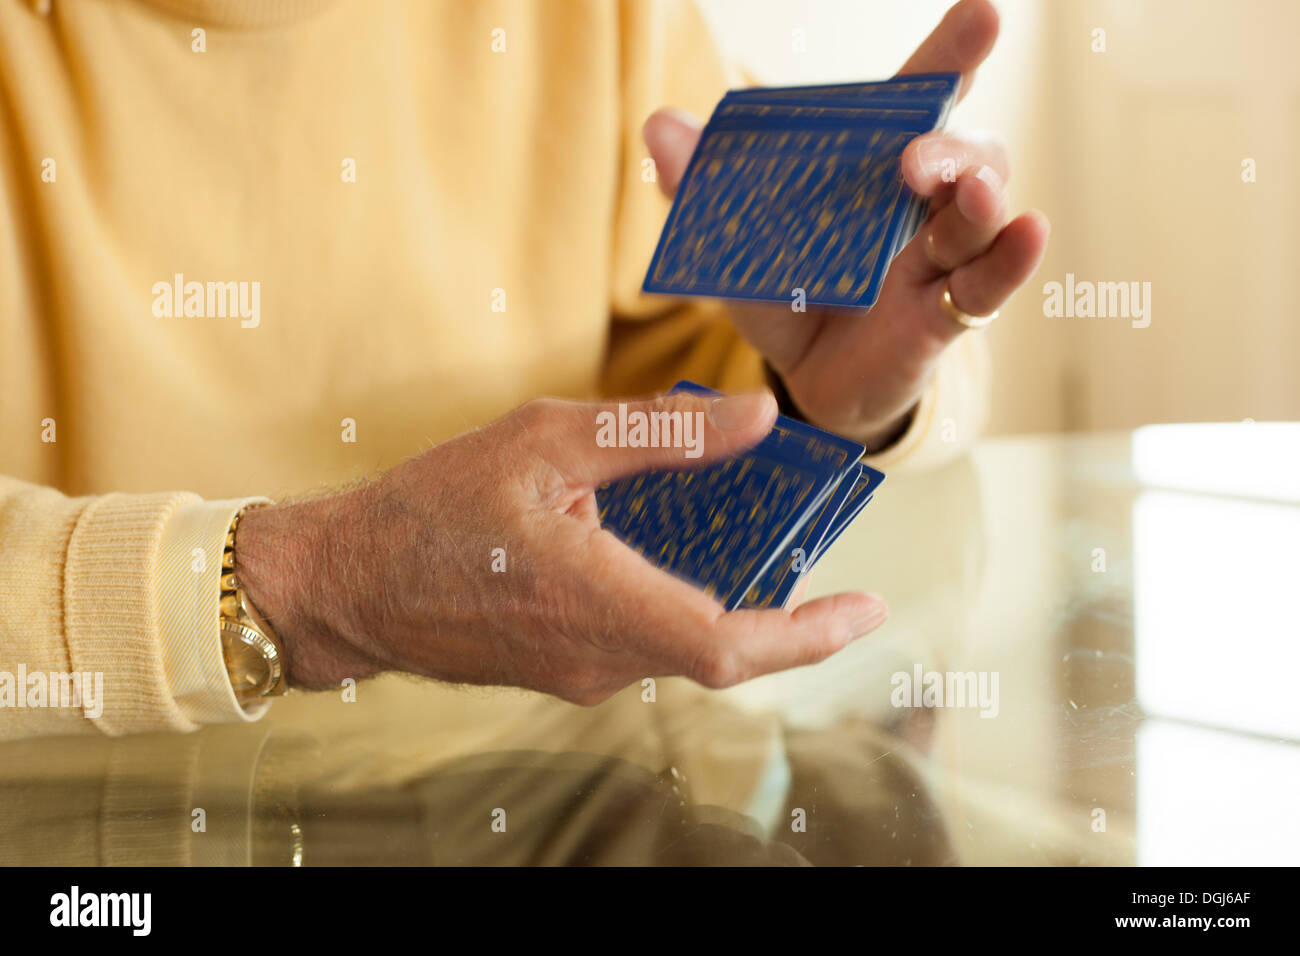 Close up of de mains shuffling playing cards Photo Stock